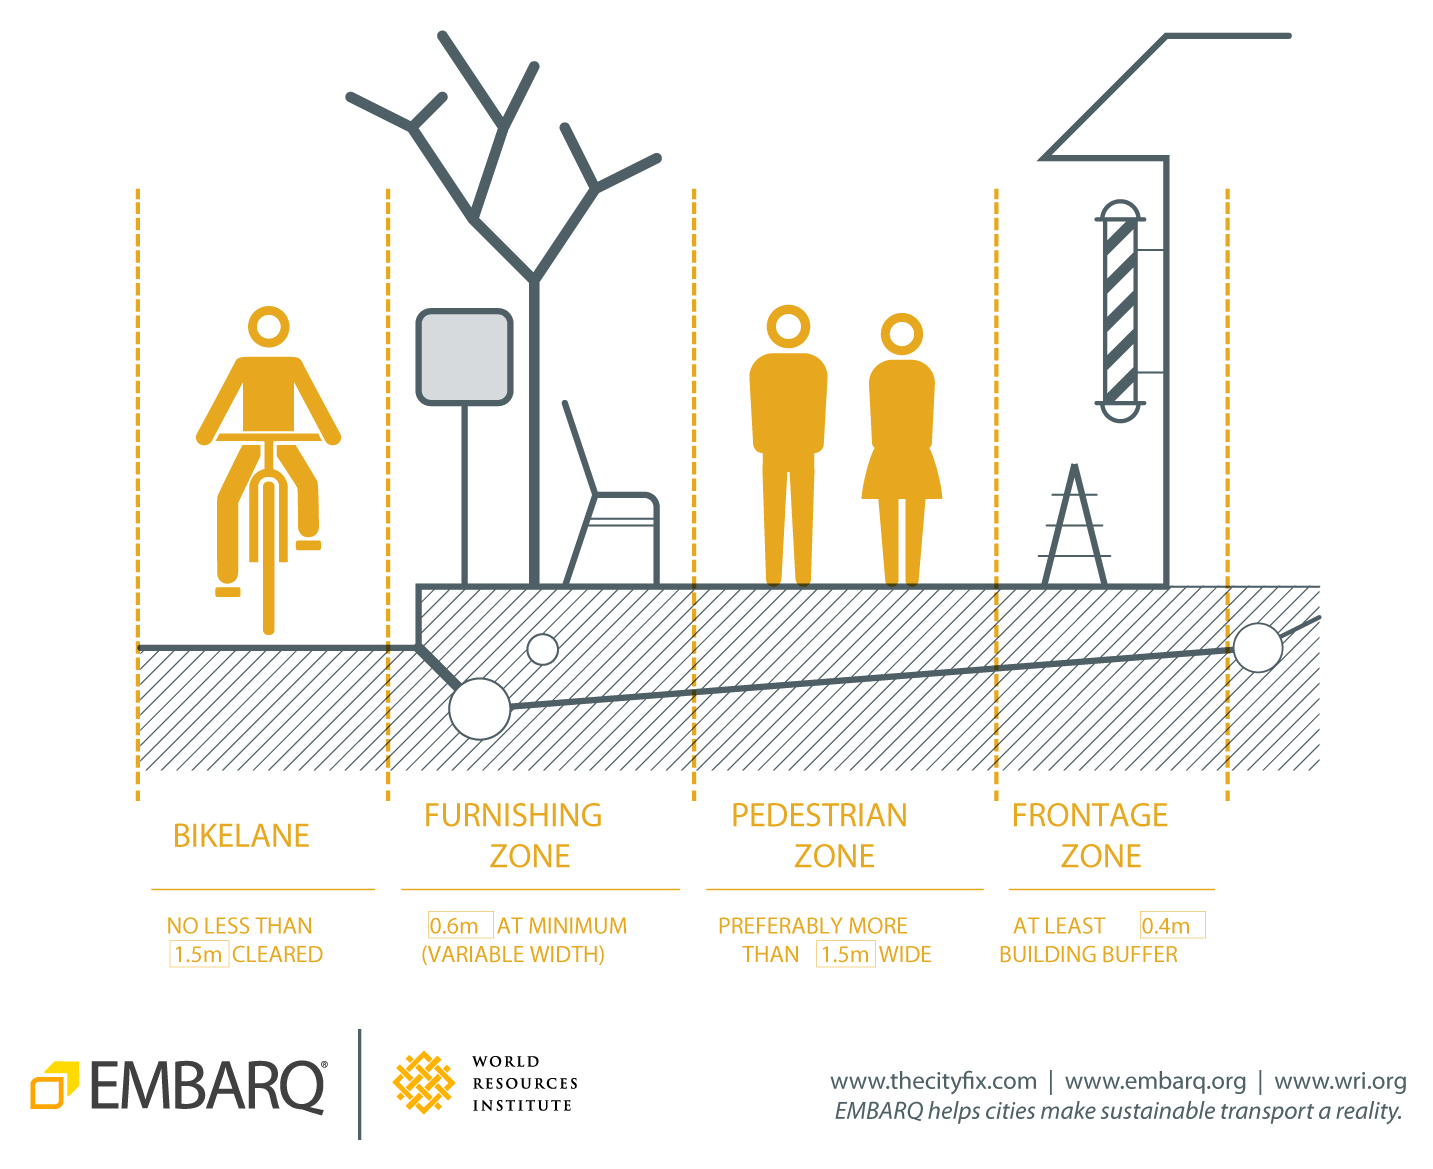 <p>A balanced street has ample sidewalks, comfortable bike facilities that connect to a network, and safe ways to cross streets, making active transportation possible even on larger roads.</p>